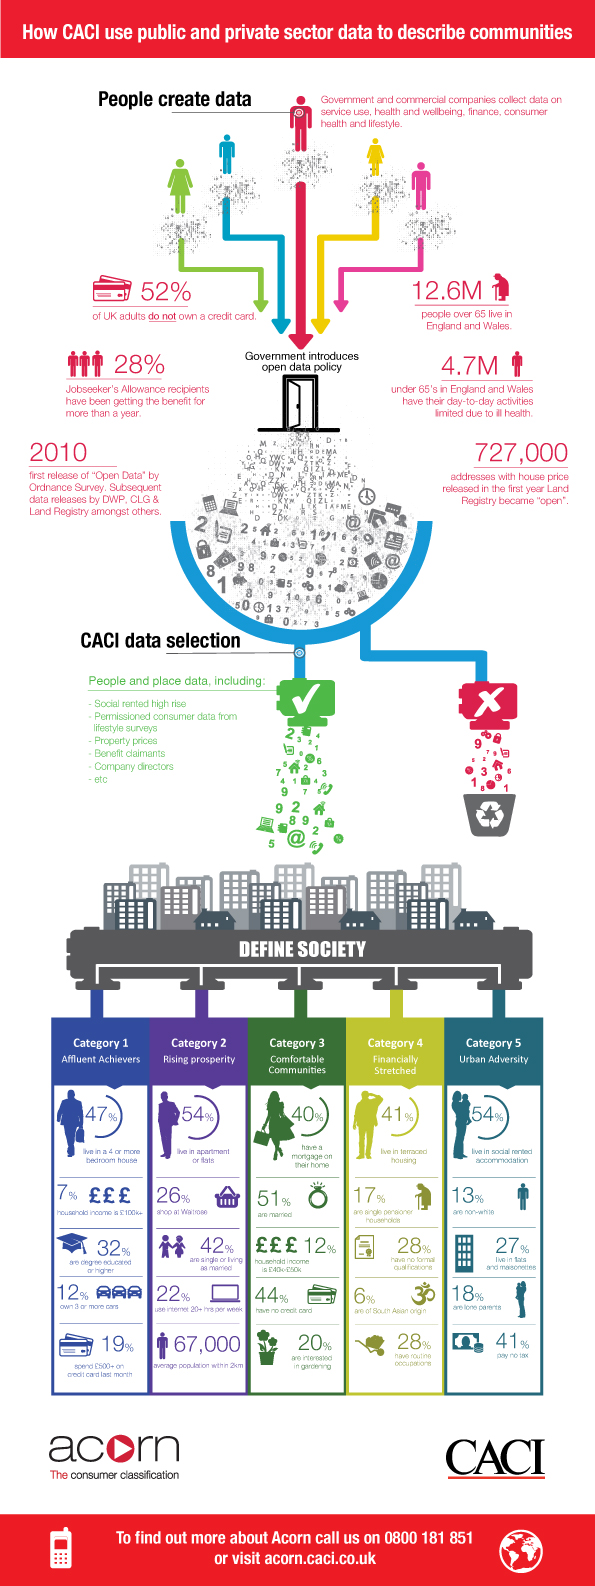 How CACI use public and private sector data to describe communities - To find out more call us on 0800 181 851 or visit acorn.caci.co.uk